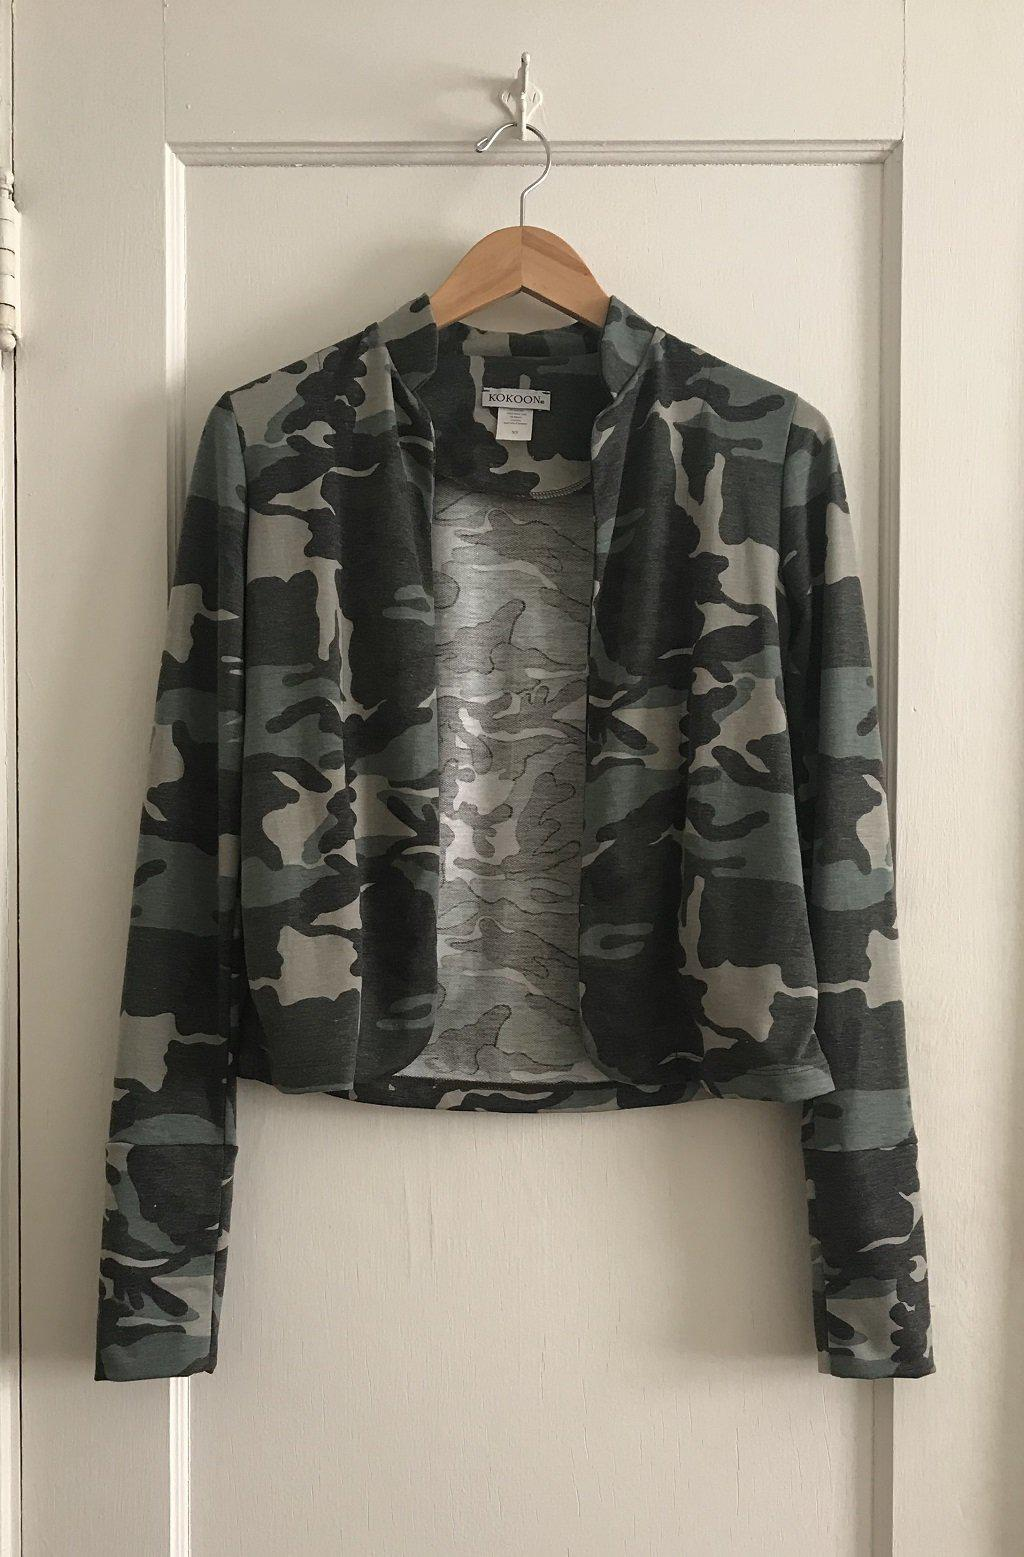 KOKOON Guru Who Jacket in Minty Camo